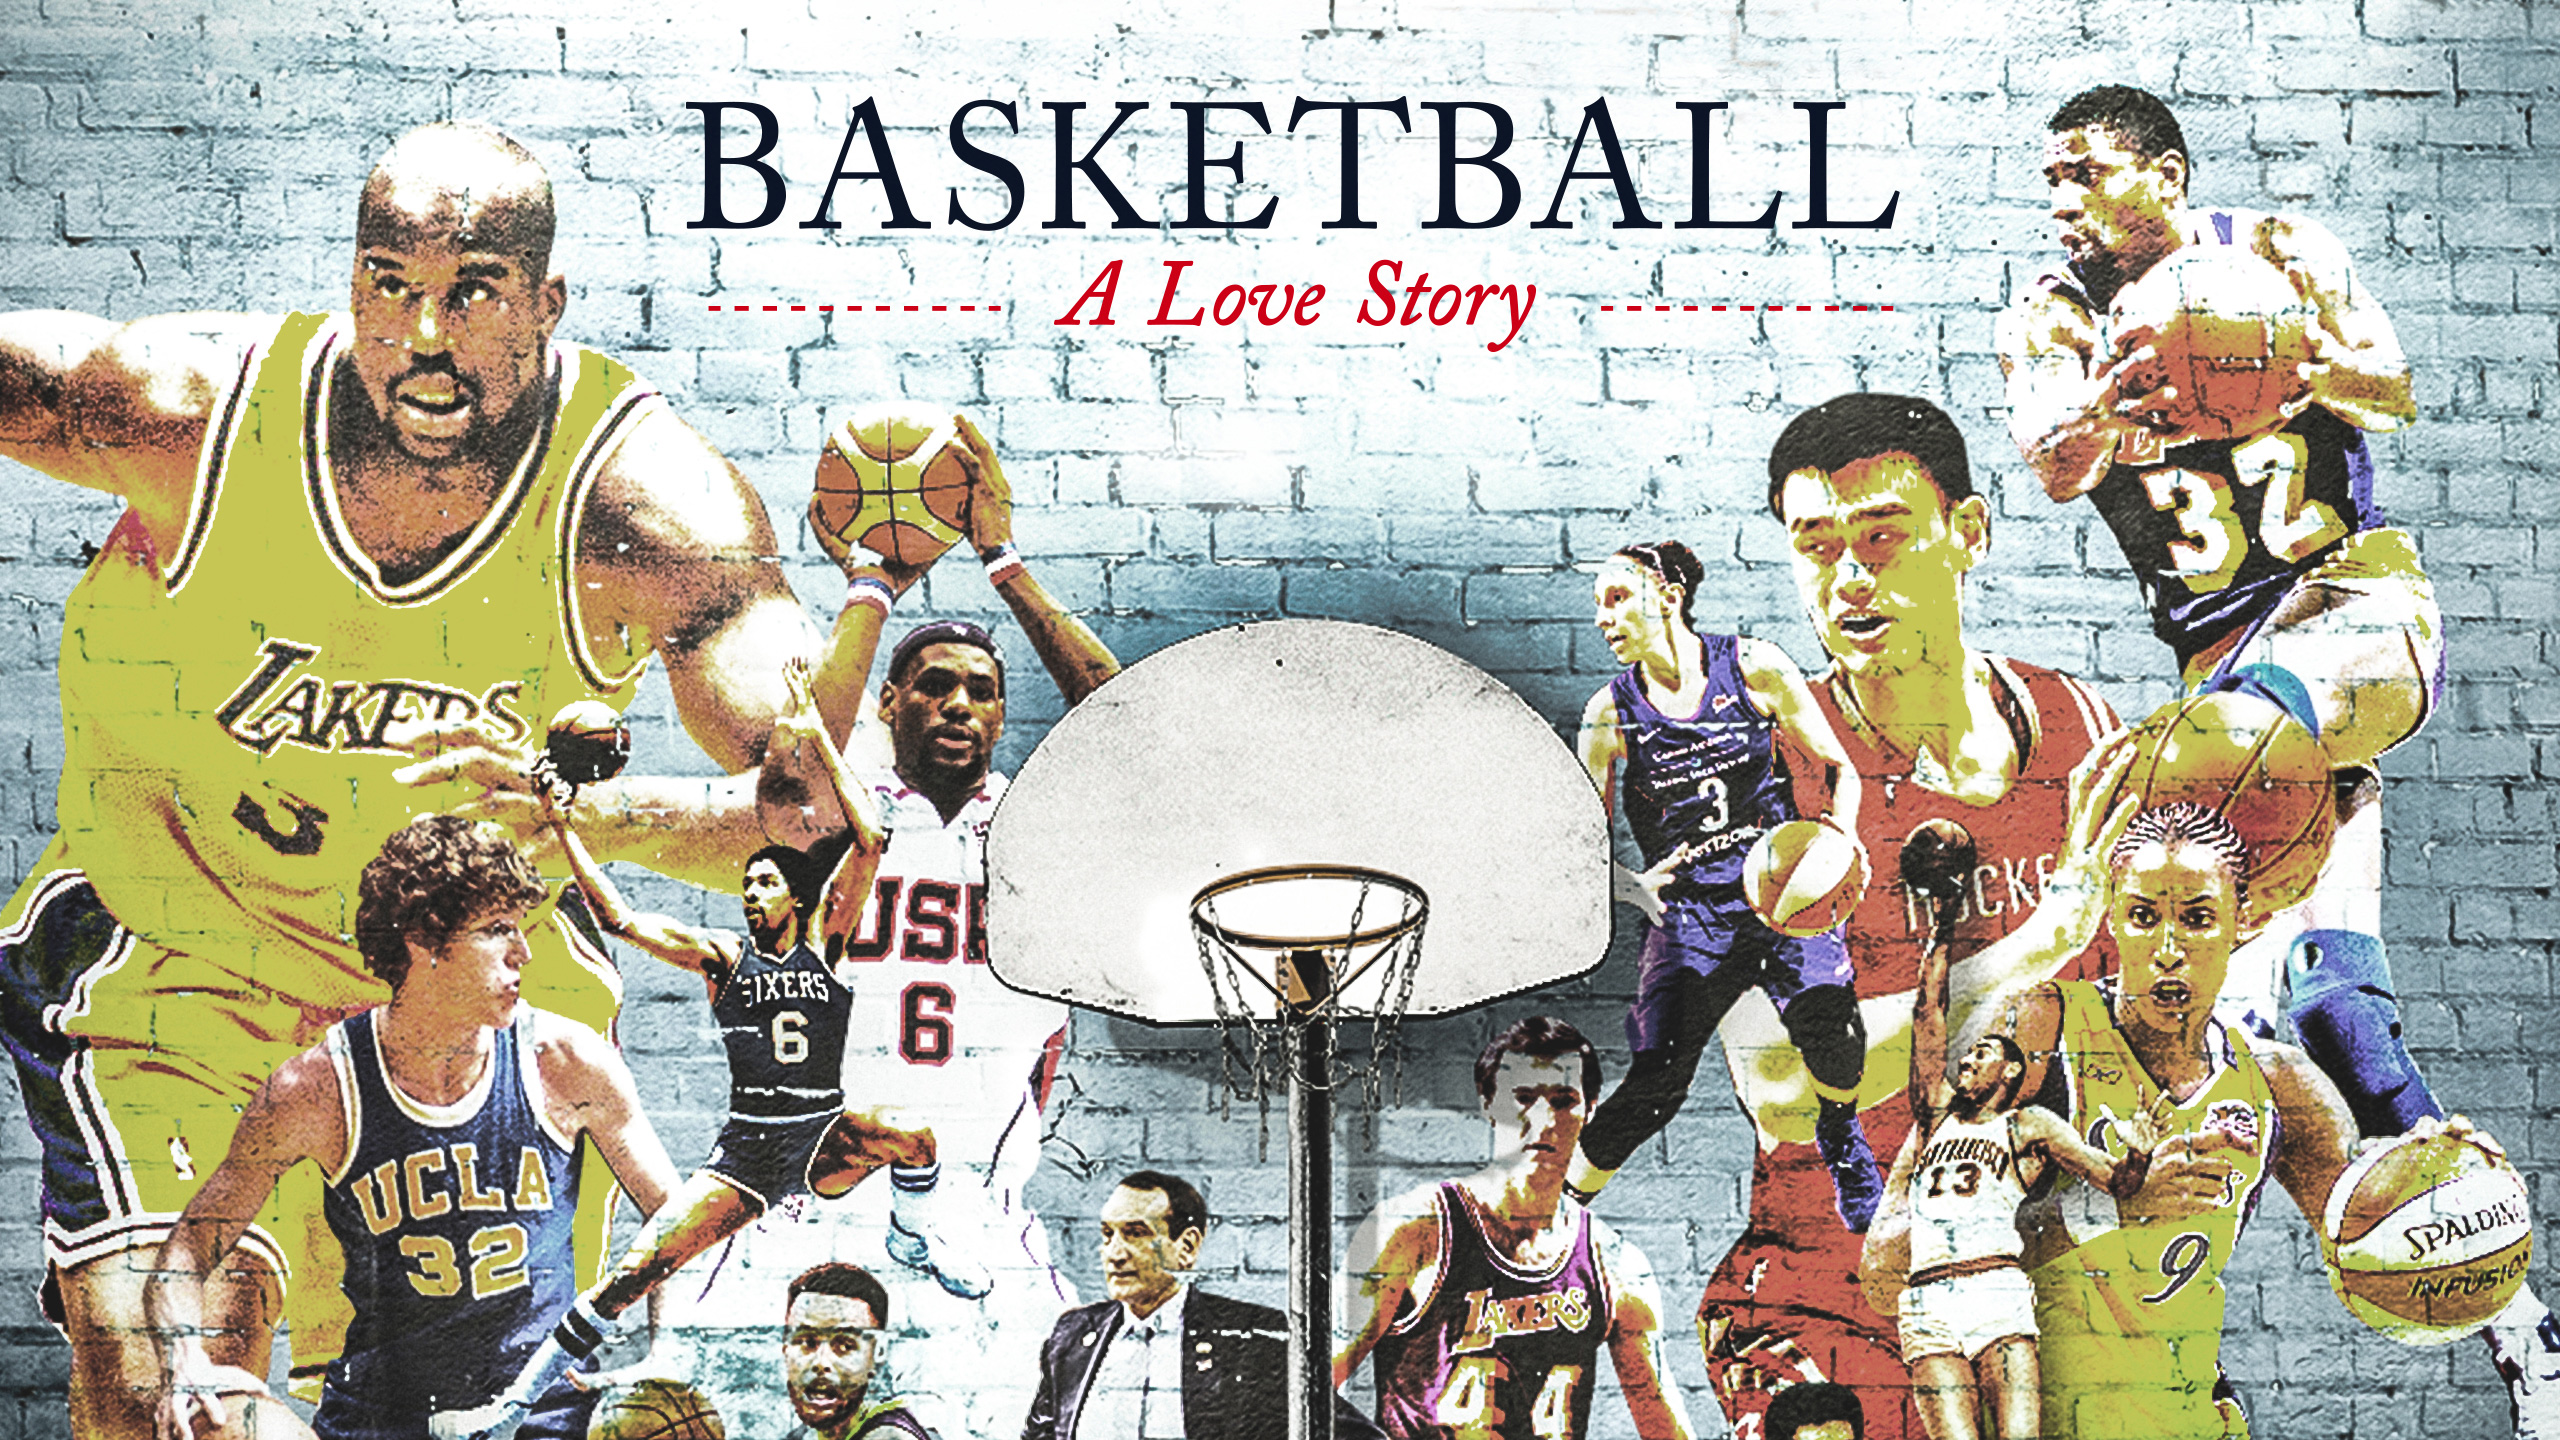 Basketball: A Love Story - Episode 10